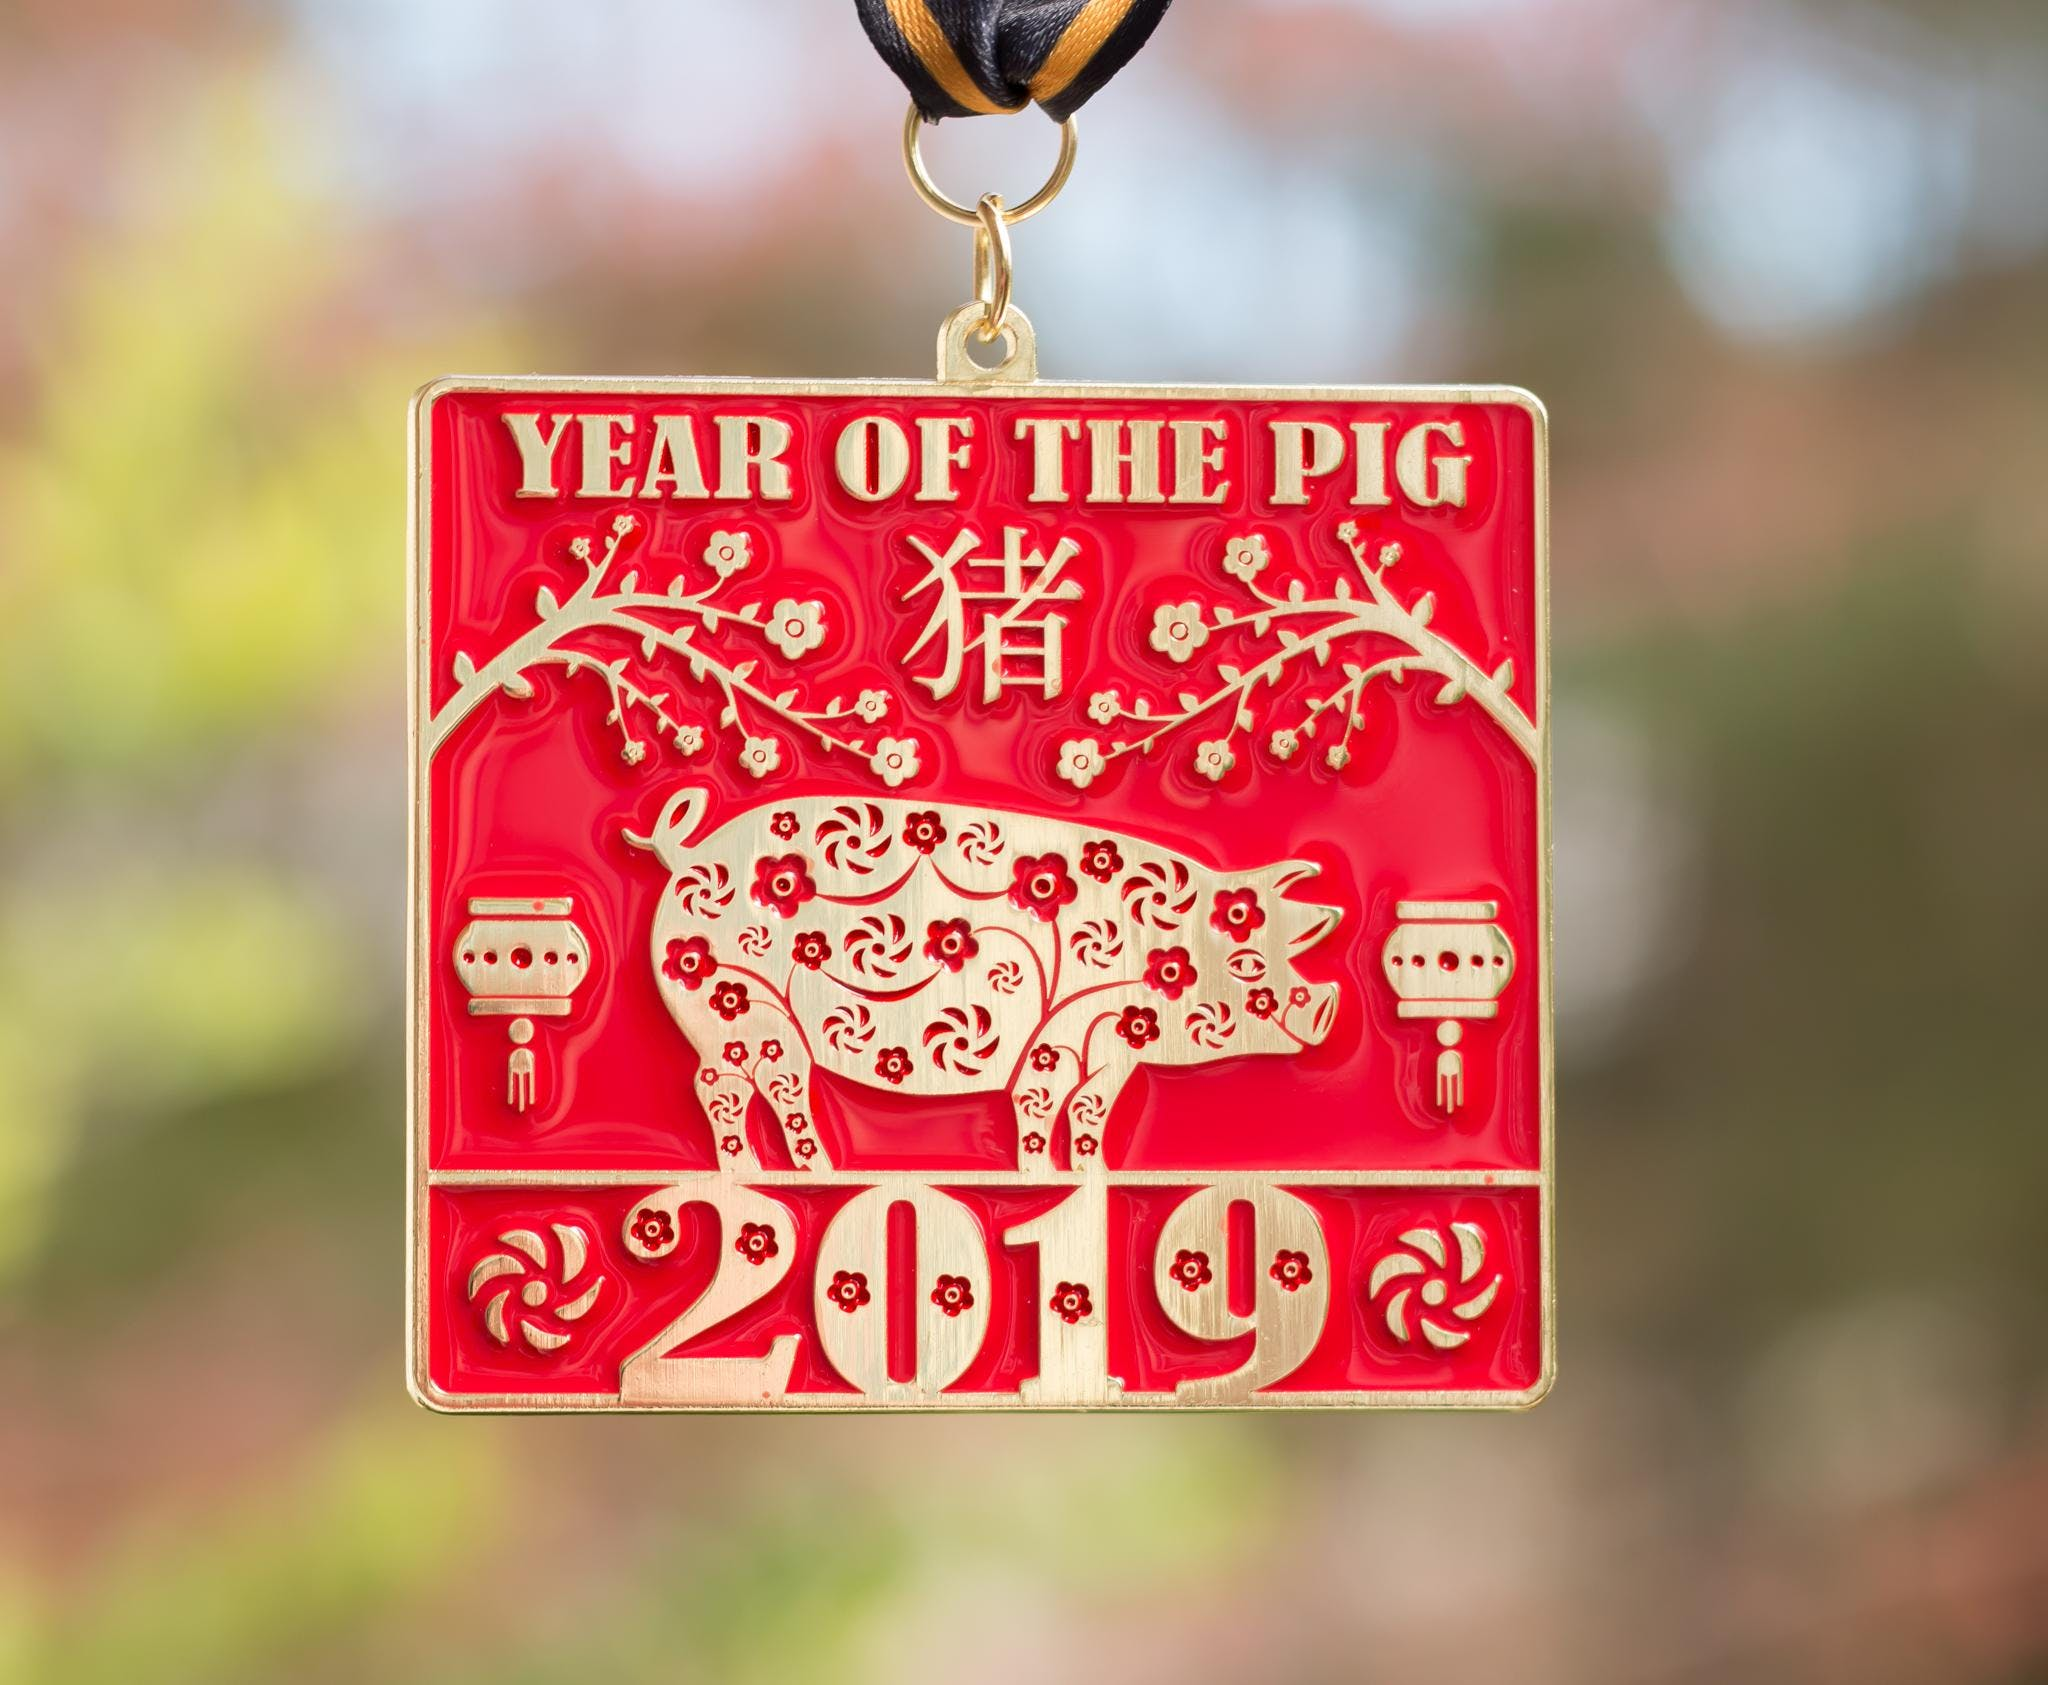 New Year Running and Walking Challenge-Year of the Pig - Boston